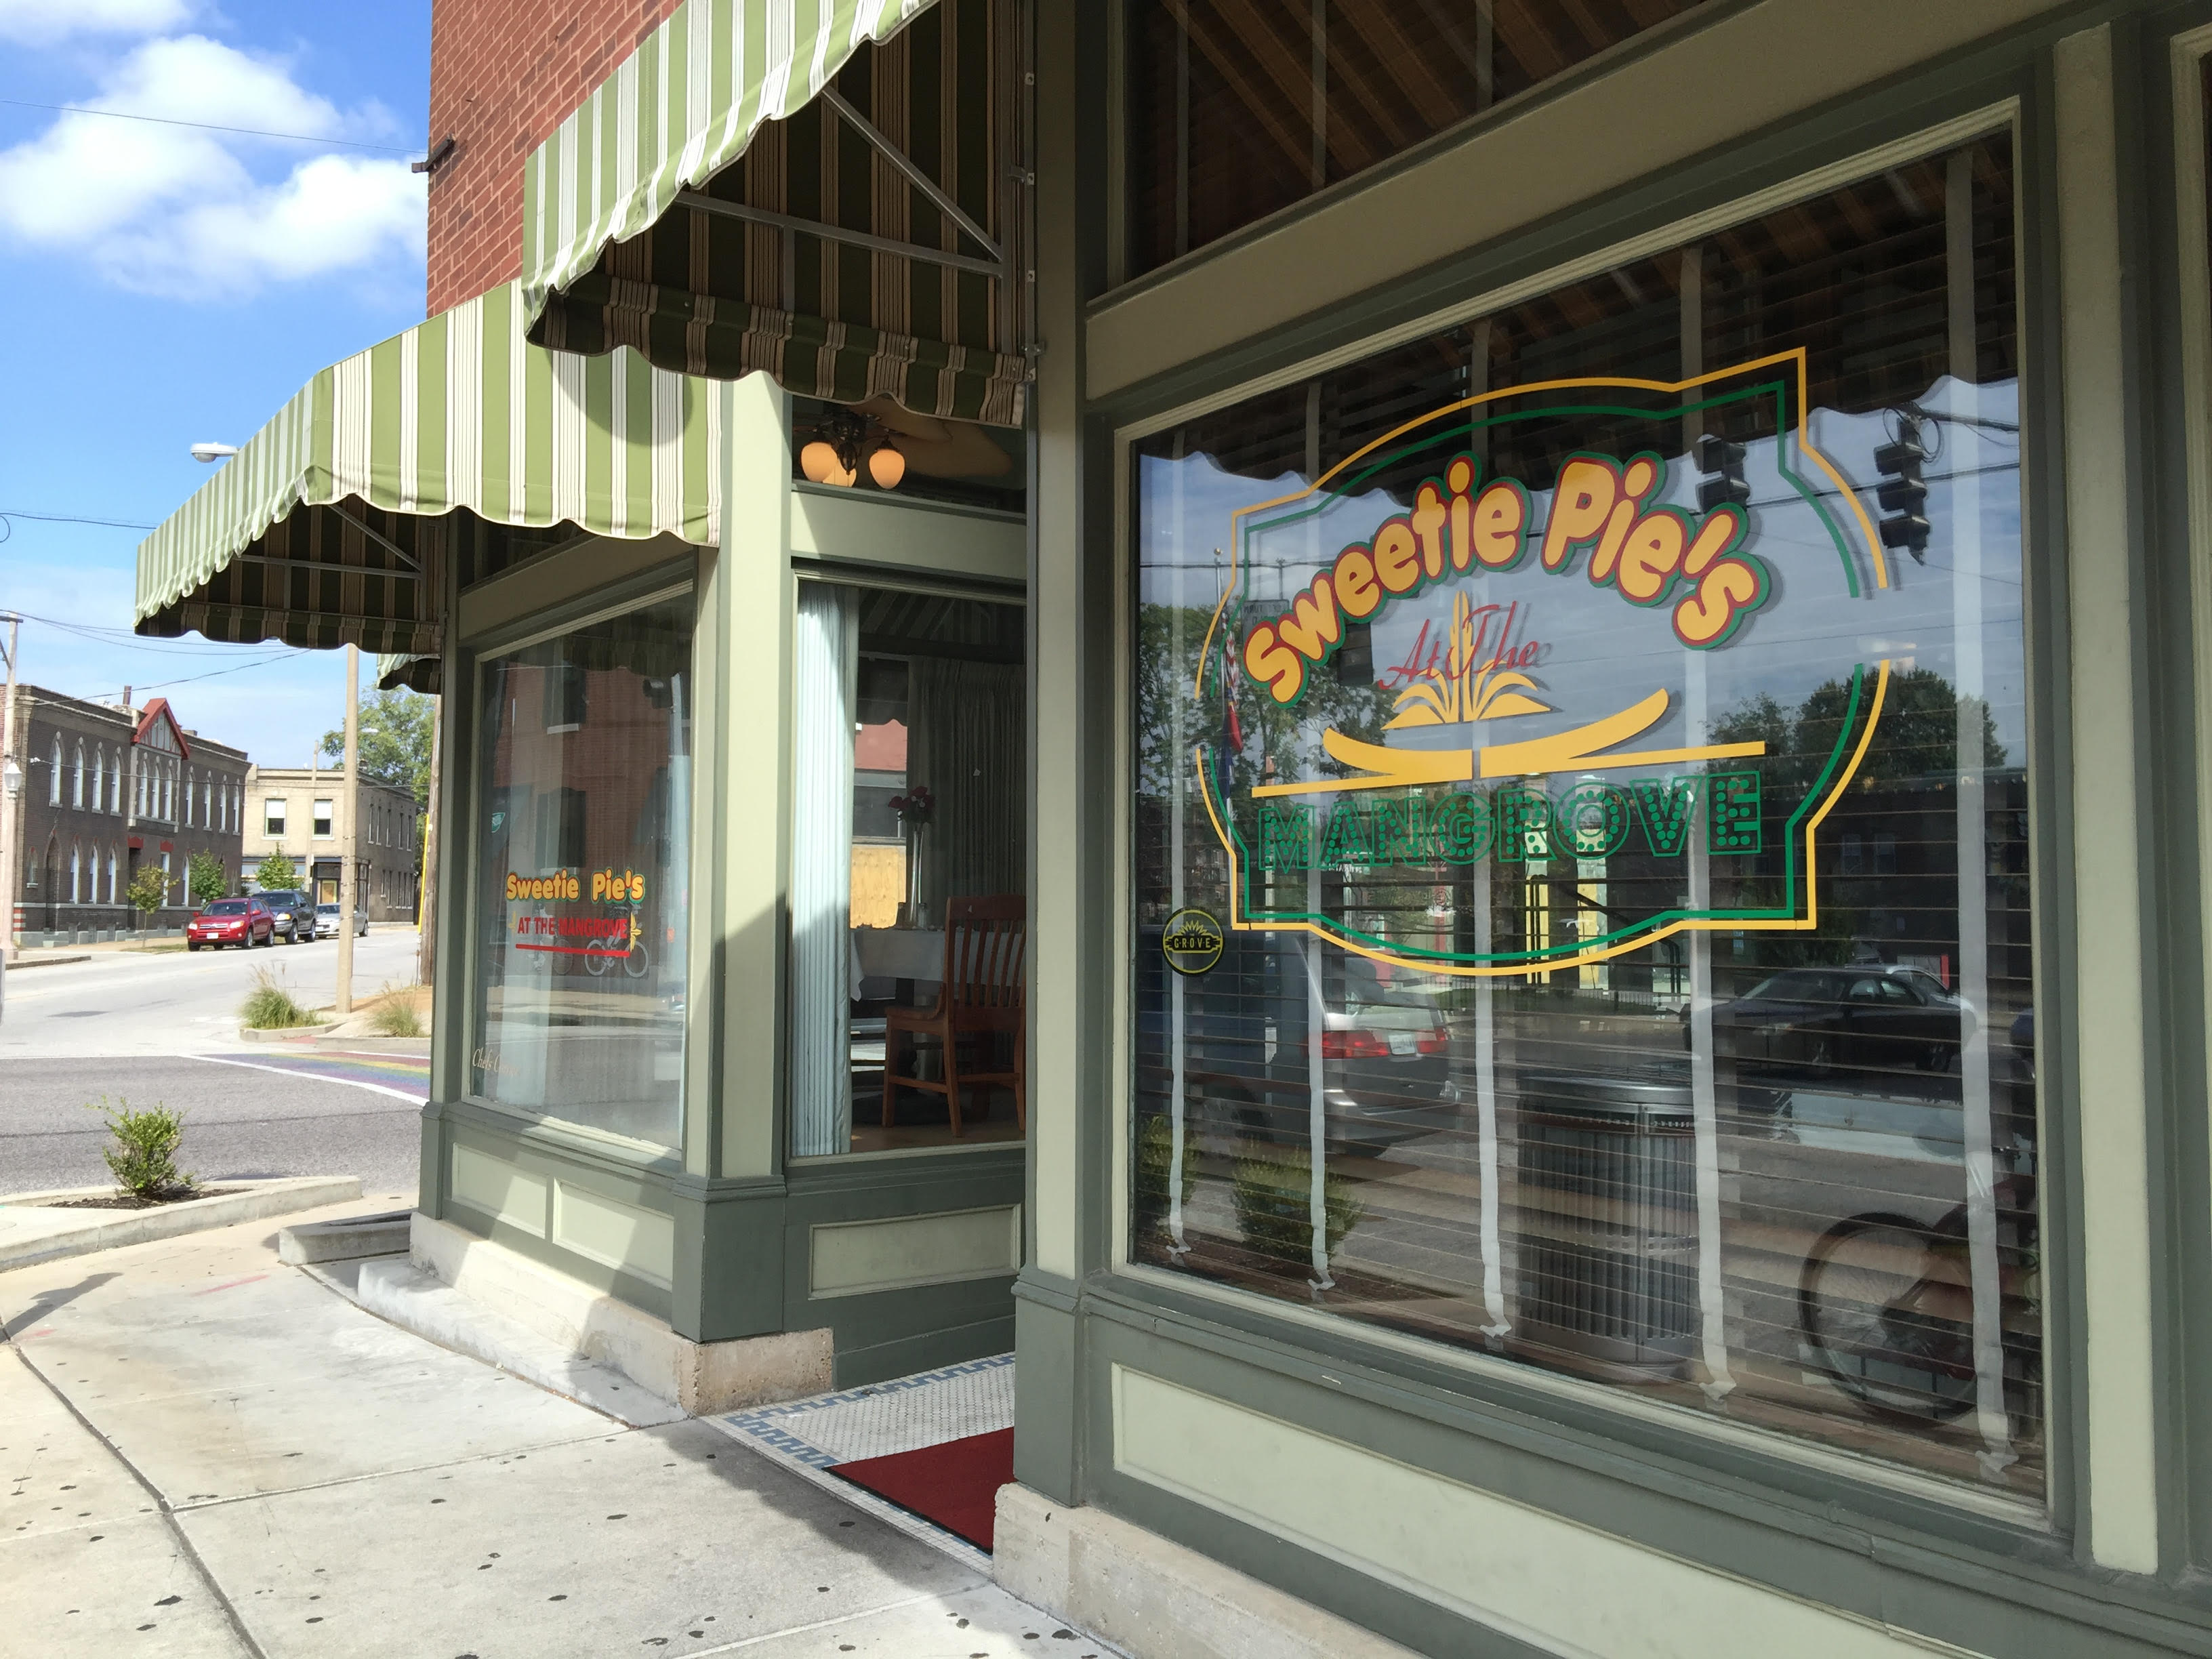 Sweetie Pie's Closes Popular Location in The Grove